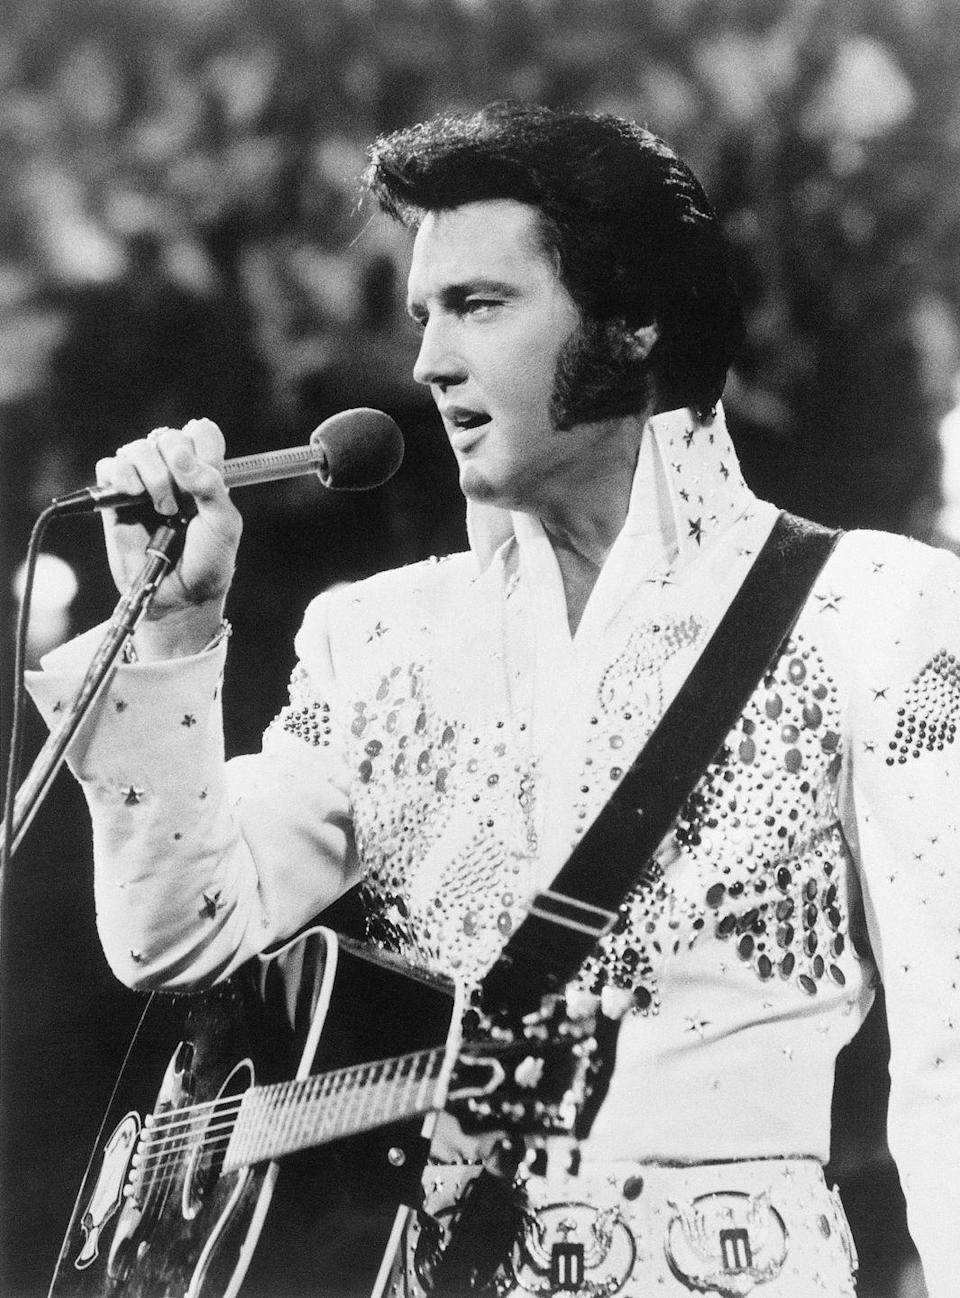 <p>Presley was found dead in 1977, after suffering heart failure at the age of 42. His untimely death was linked to his years of prescription drug use.</p>